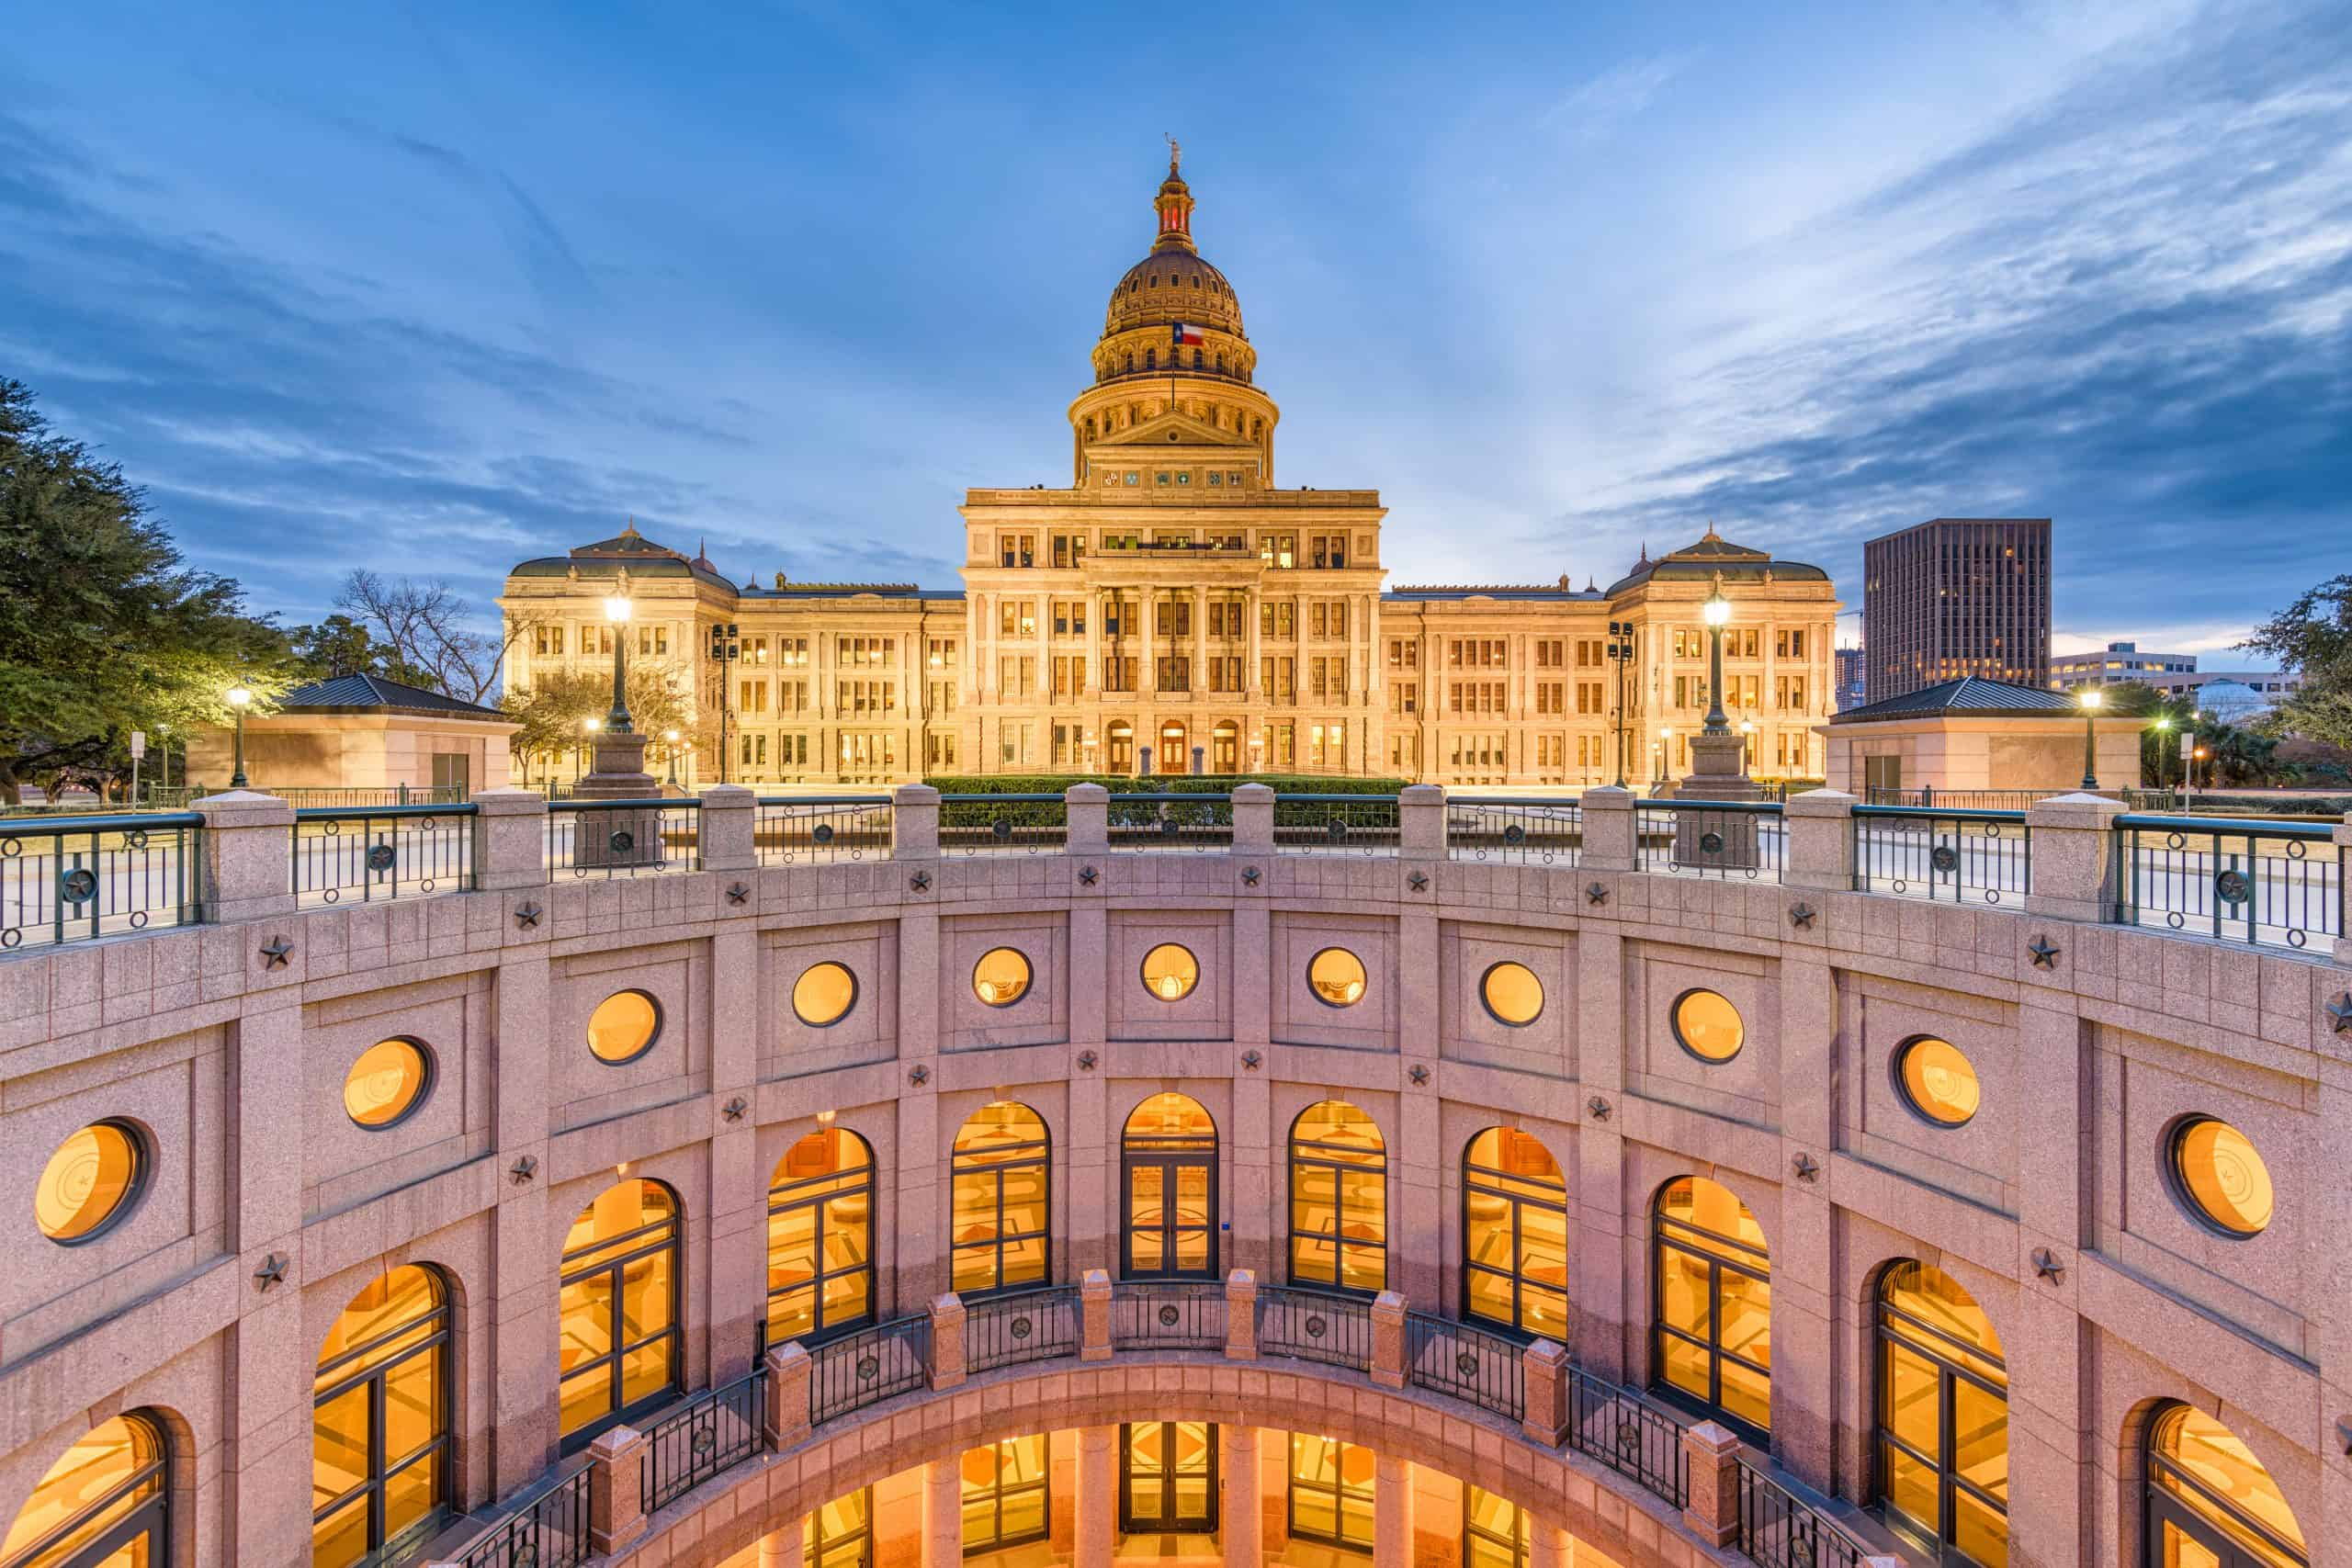 Governor Urges Local Government to Stop Raising Property Taxes - Texas